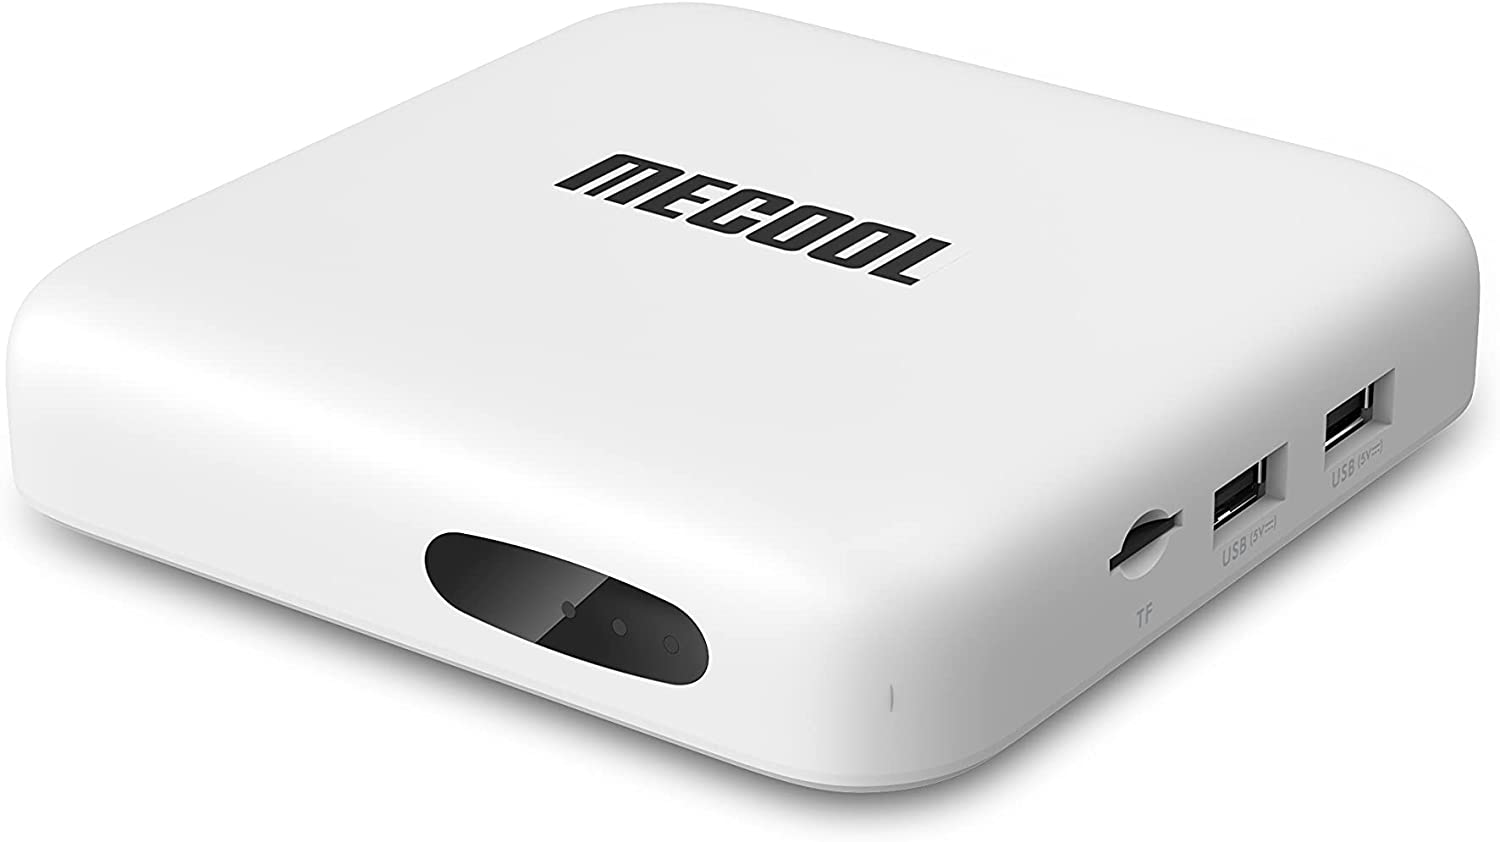 MECOOL KM2 Android TV Box 10.0 4K Video Box Streaming Media Player with Voice Remote Control